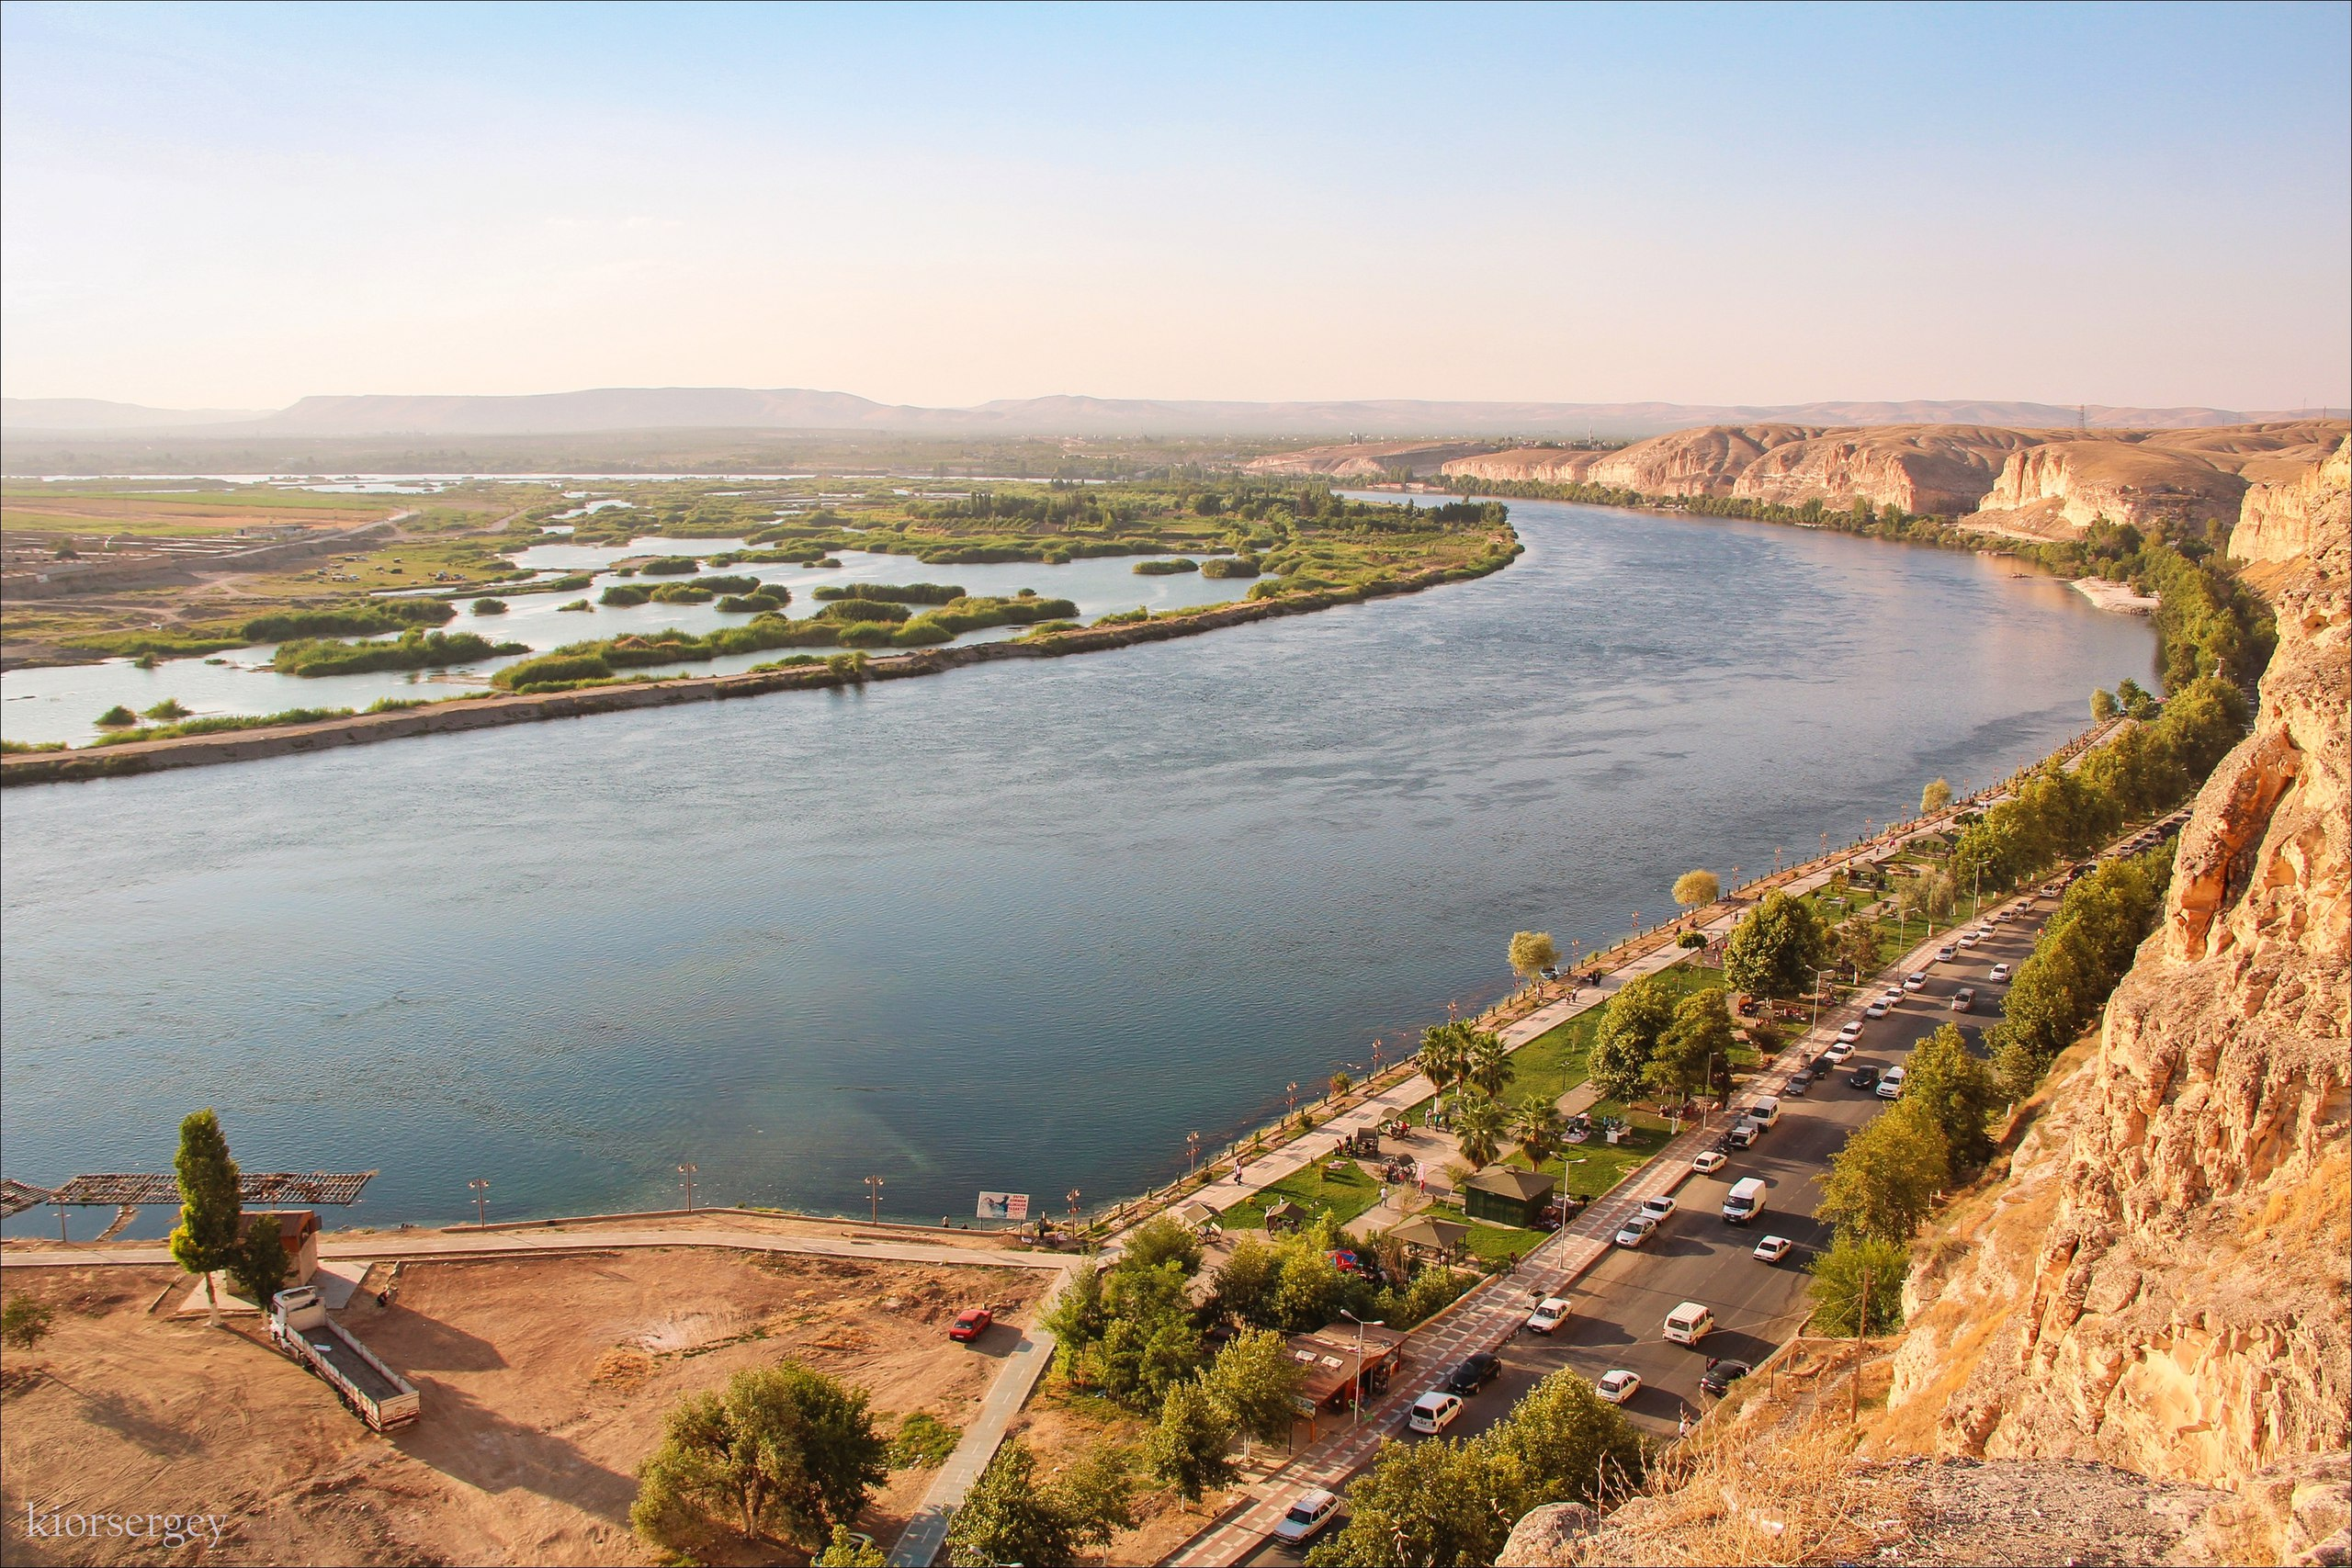 euphrates river The euphrates river is the river and the great river of the bible it is named as one of the rivers of eden the root of the word euphrates is pehrat which means to break forth and abound the euphrates river is about 1780 miles long and is the largest river in southwestern asia, and was.